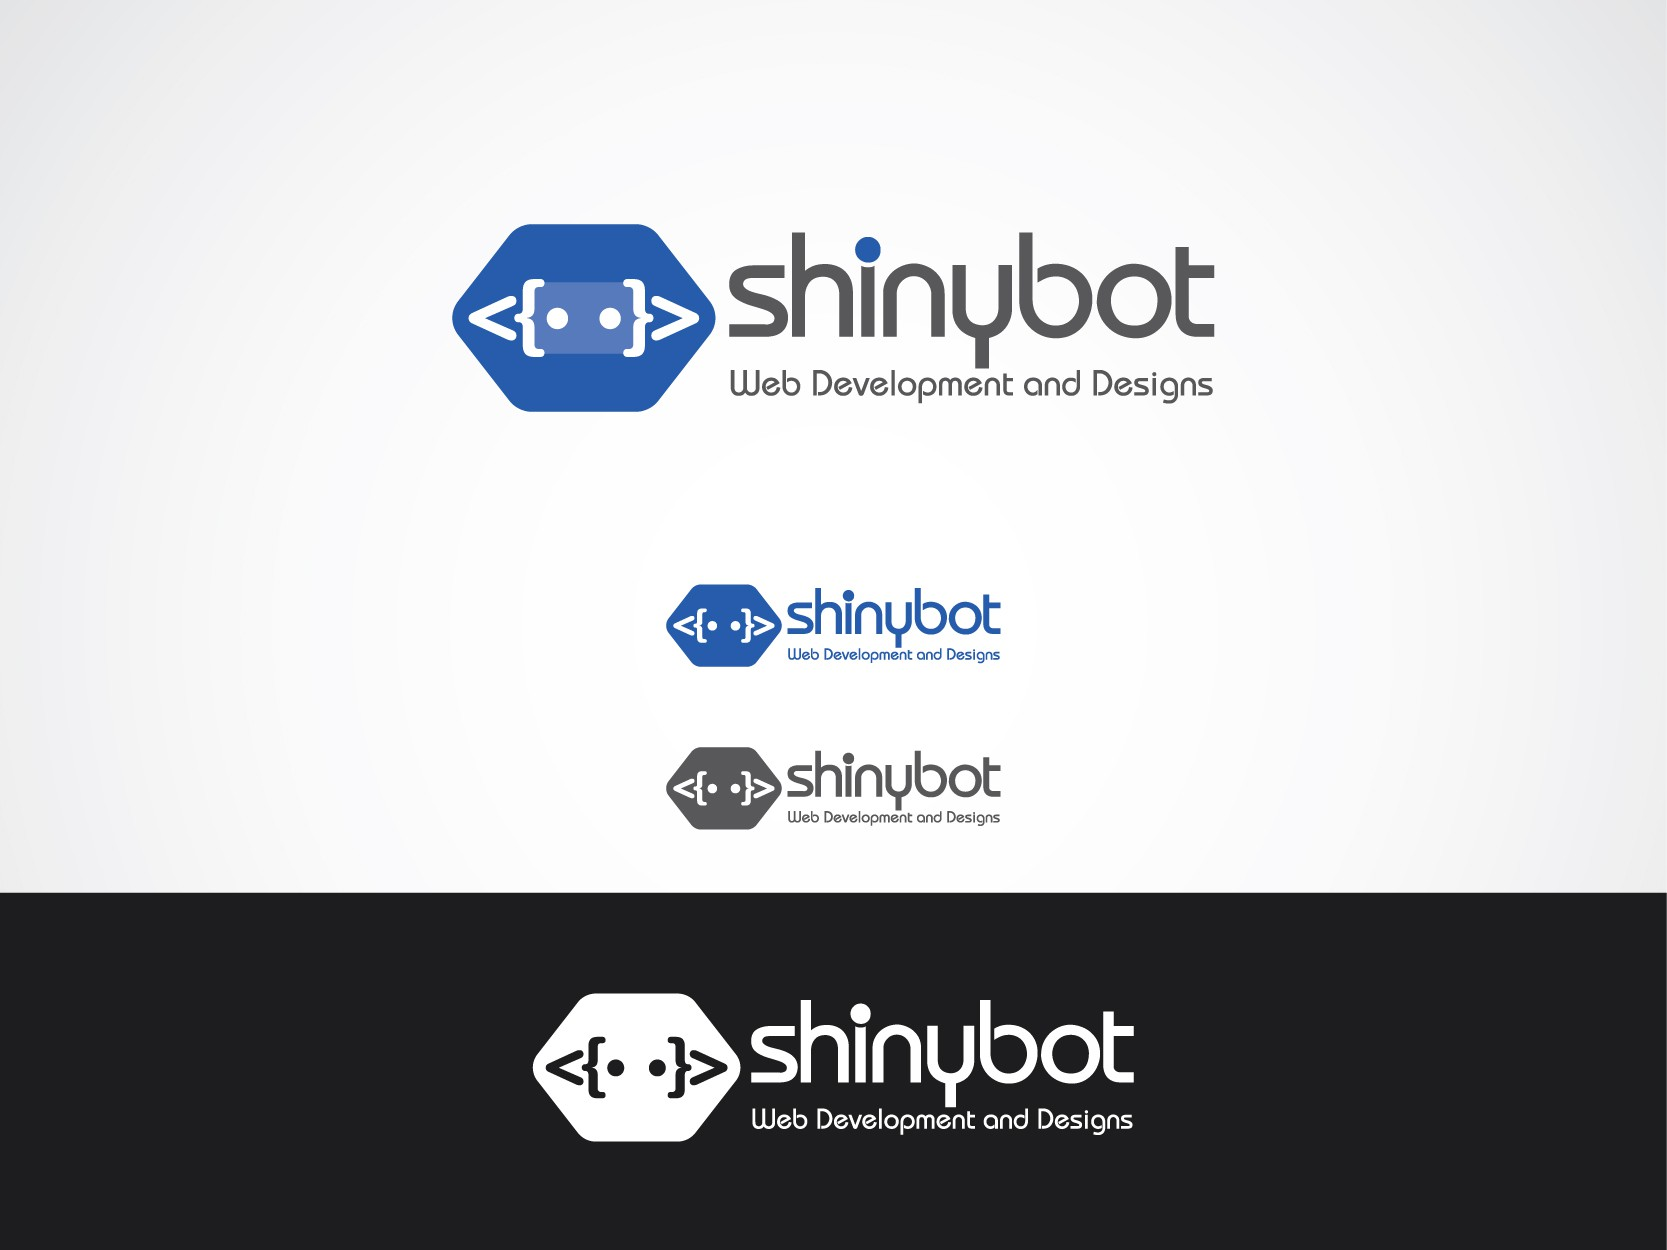 New logo wanted for shinybot